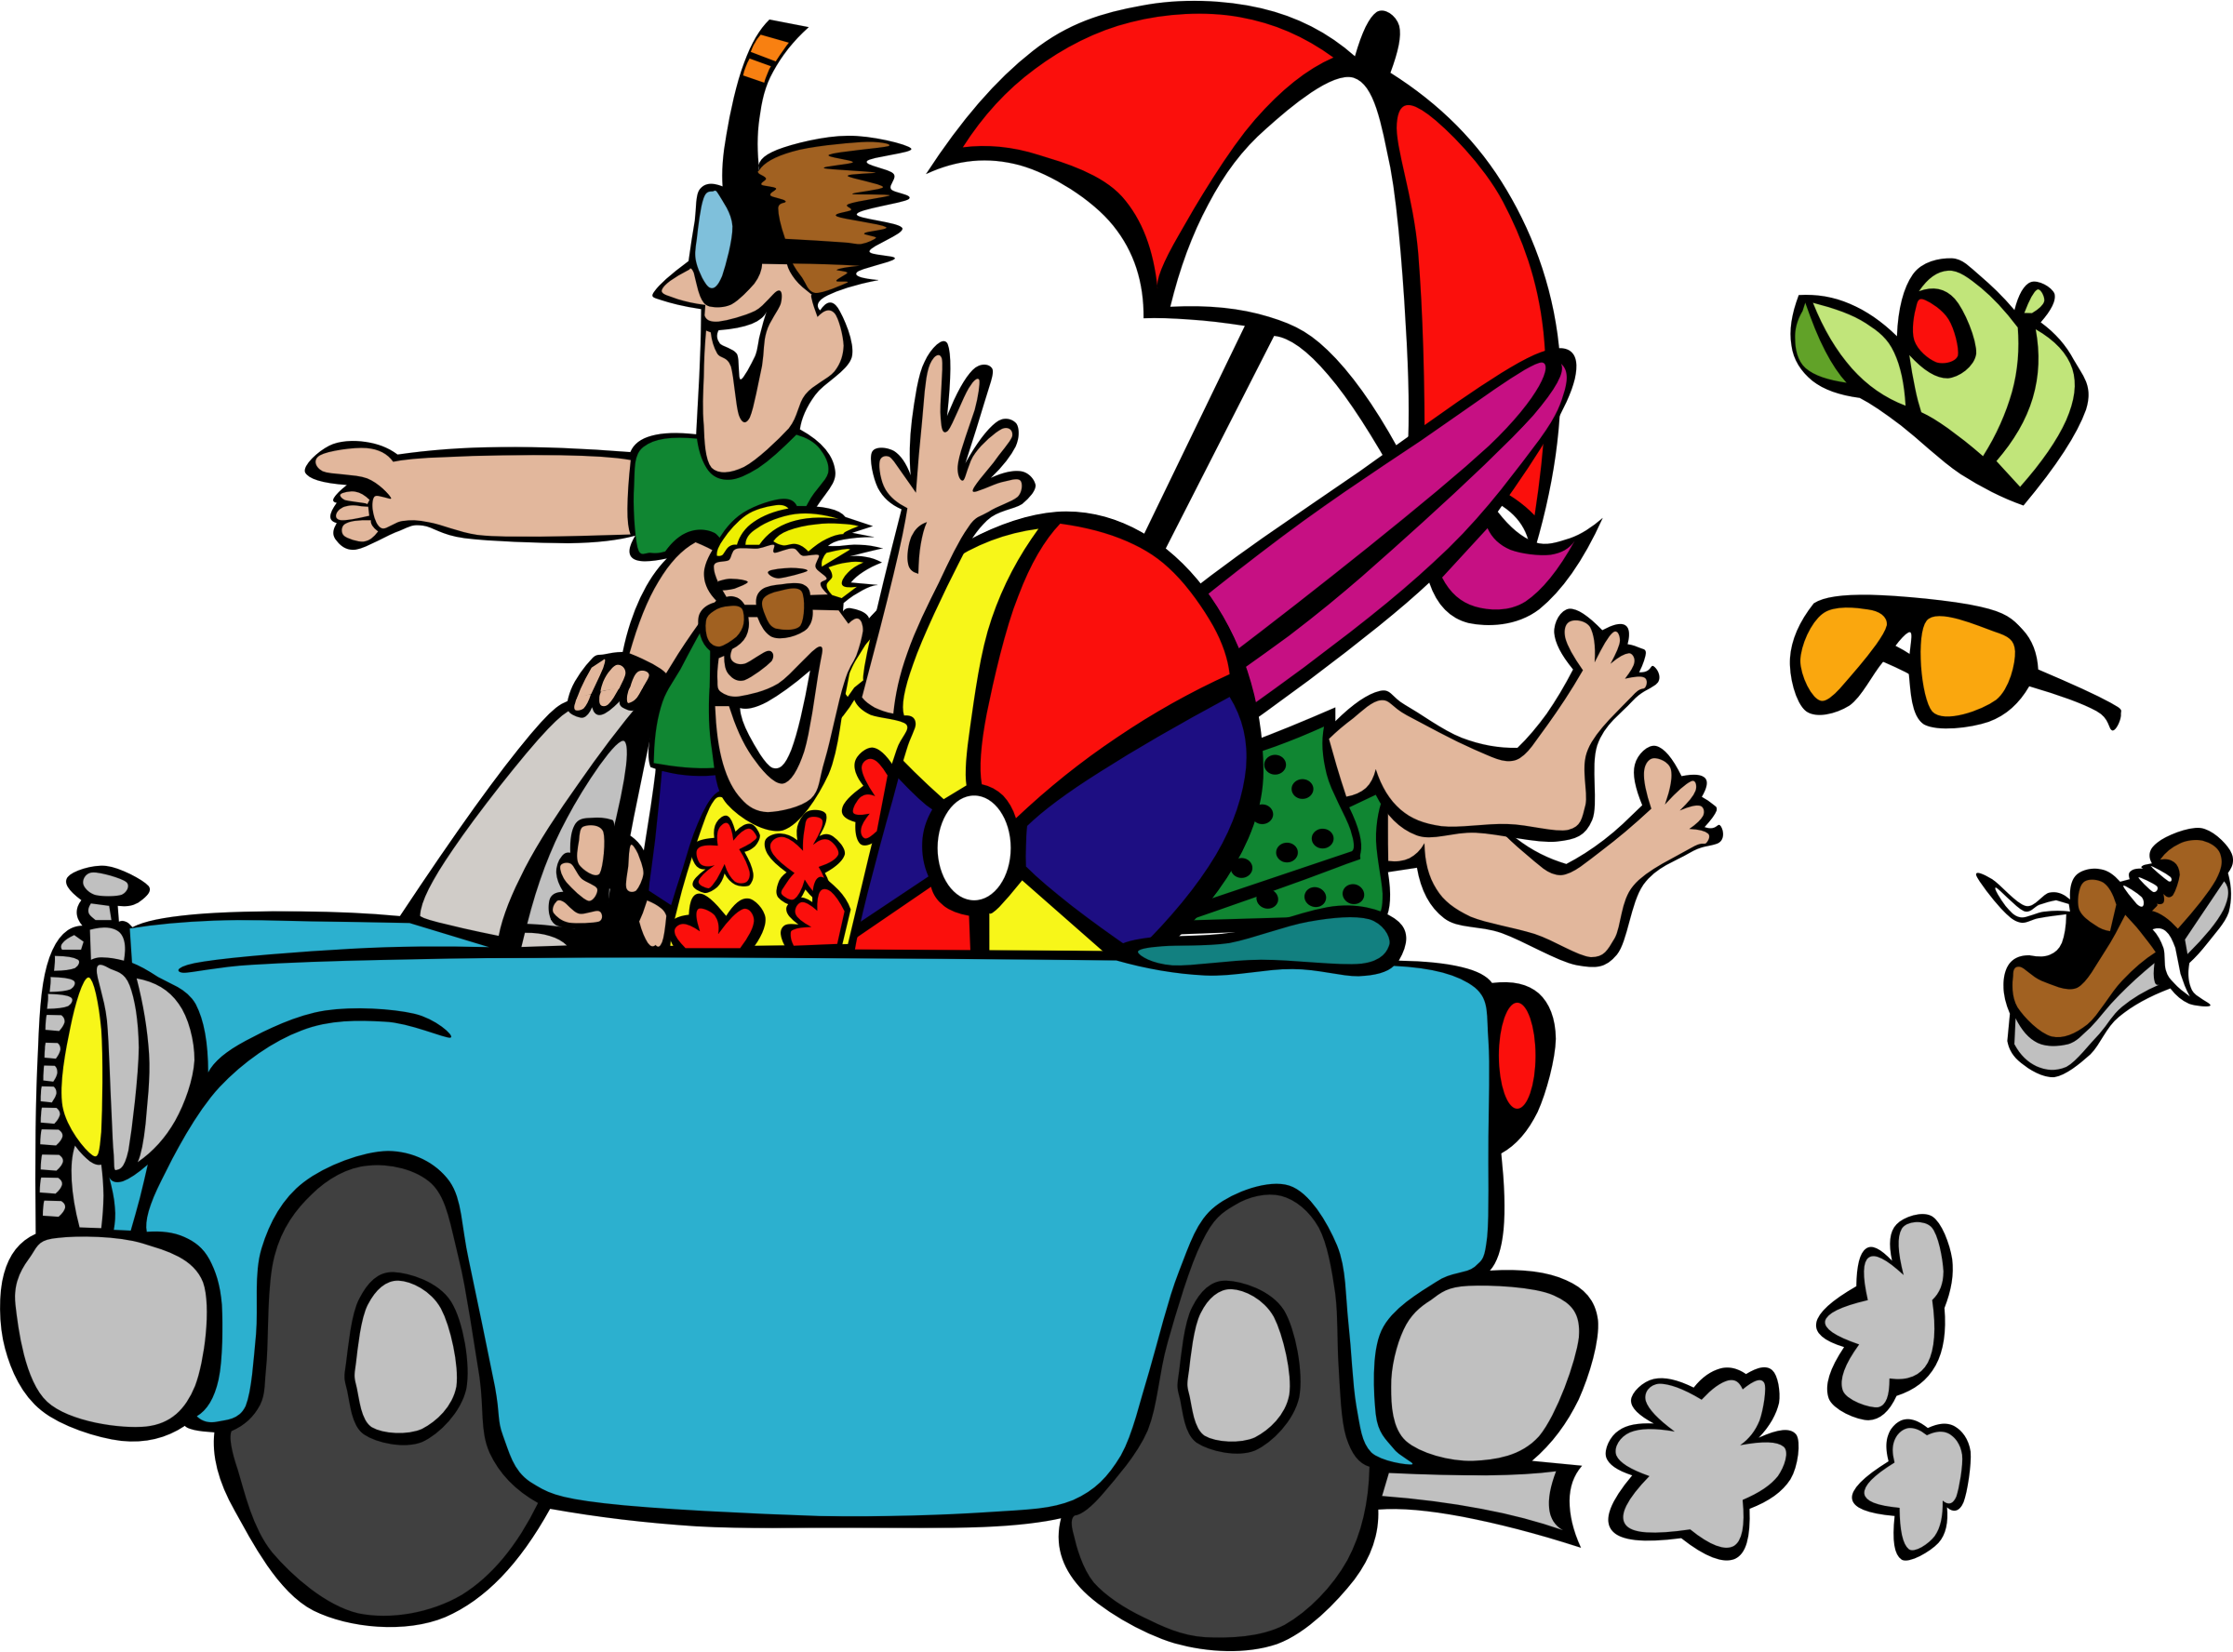 Big image png. Trip clipart beach holiday royalty free download